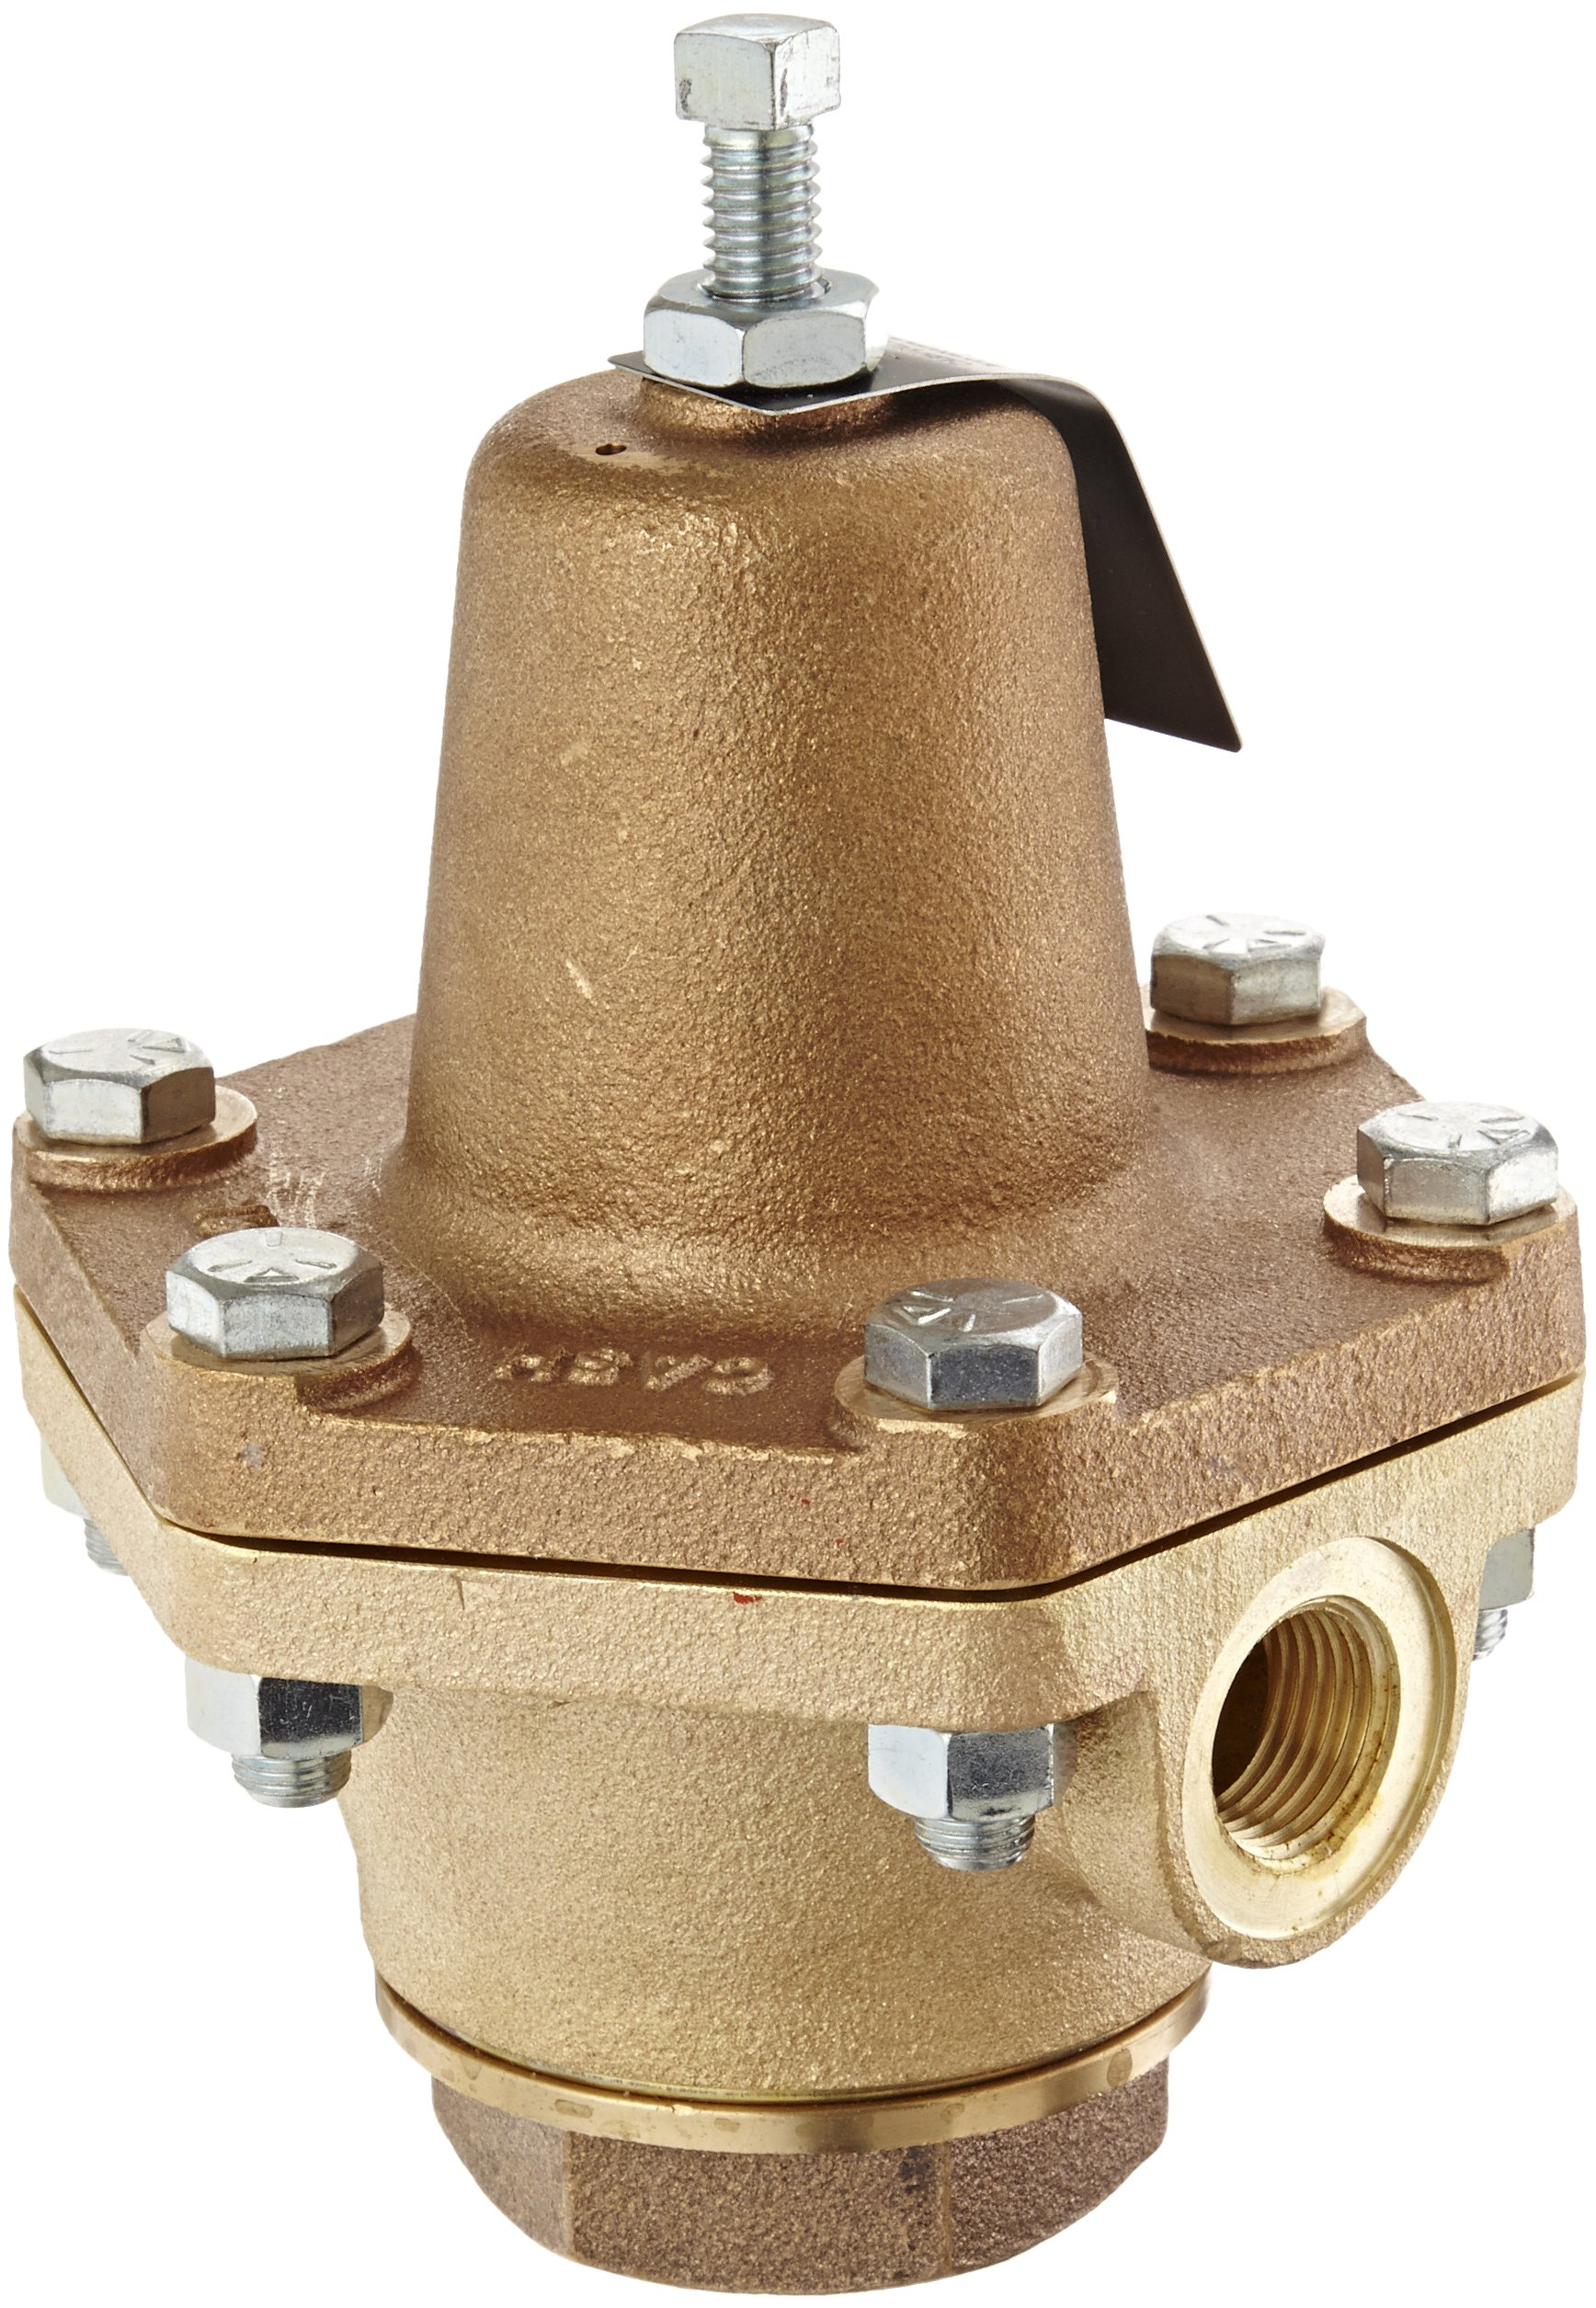 Cash Valve 02770-0100A Bronze Pressure Regulator, 50 - 150 PSI Pressure Range, 1/2'' NPT Female by Cash Valve